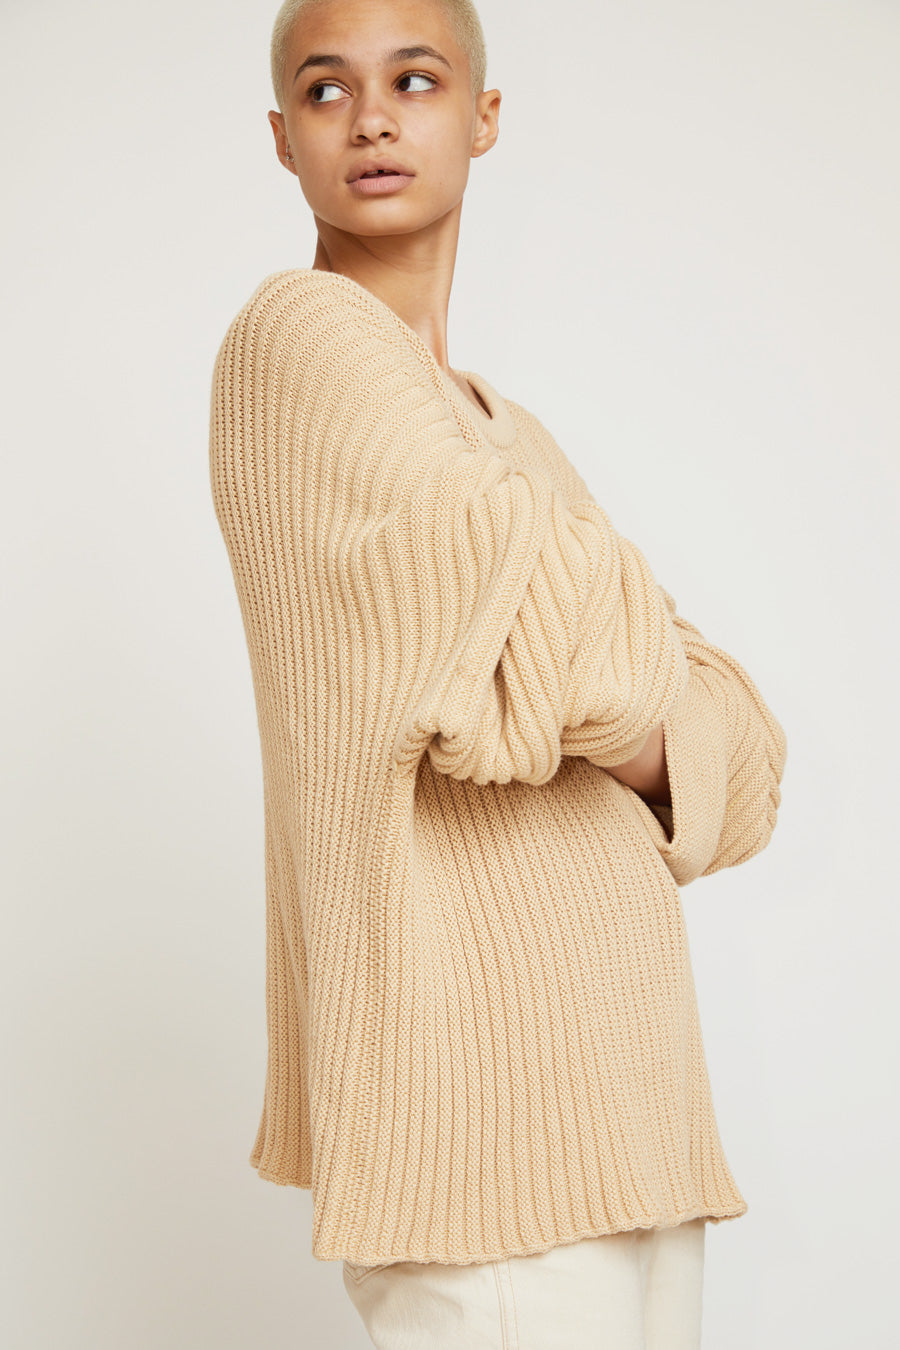 Baserange Kai Cotton Rib Sweater in Corda Off-White